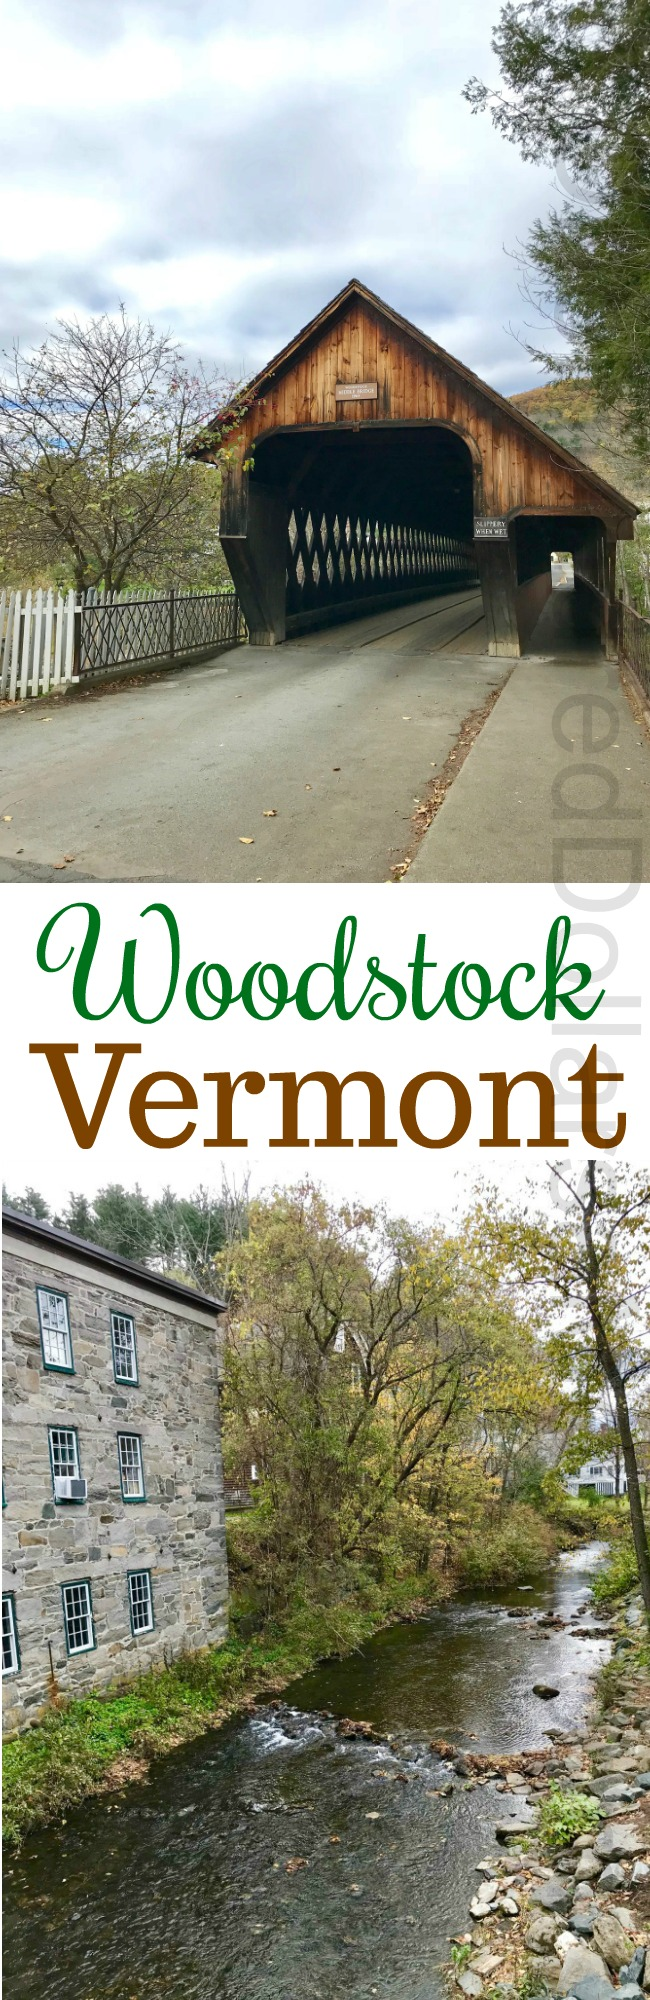 Woodstock, Vermont – The Cutest Downtown Ever, Beautiful Homes, and the $14.50 Sandwich